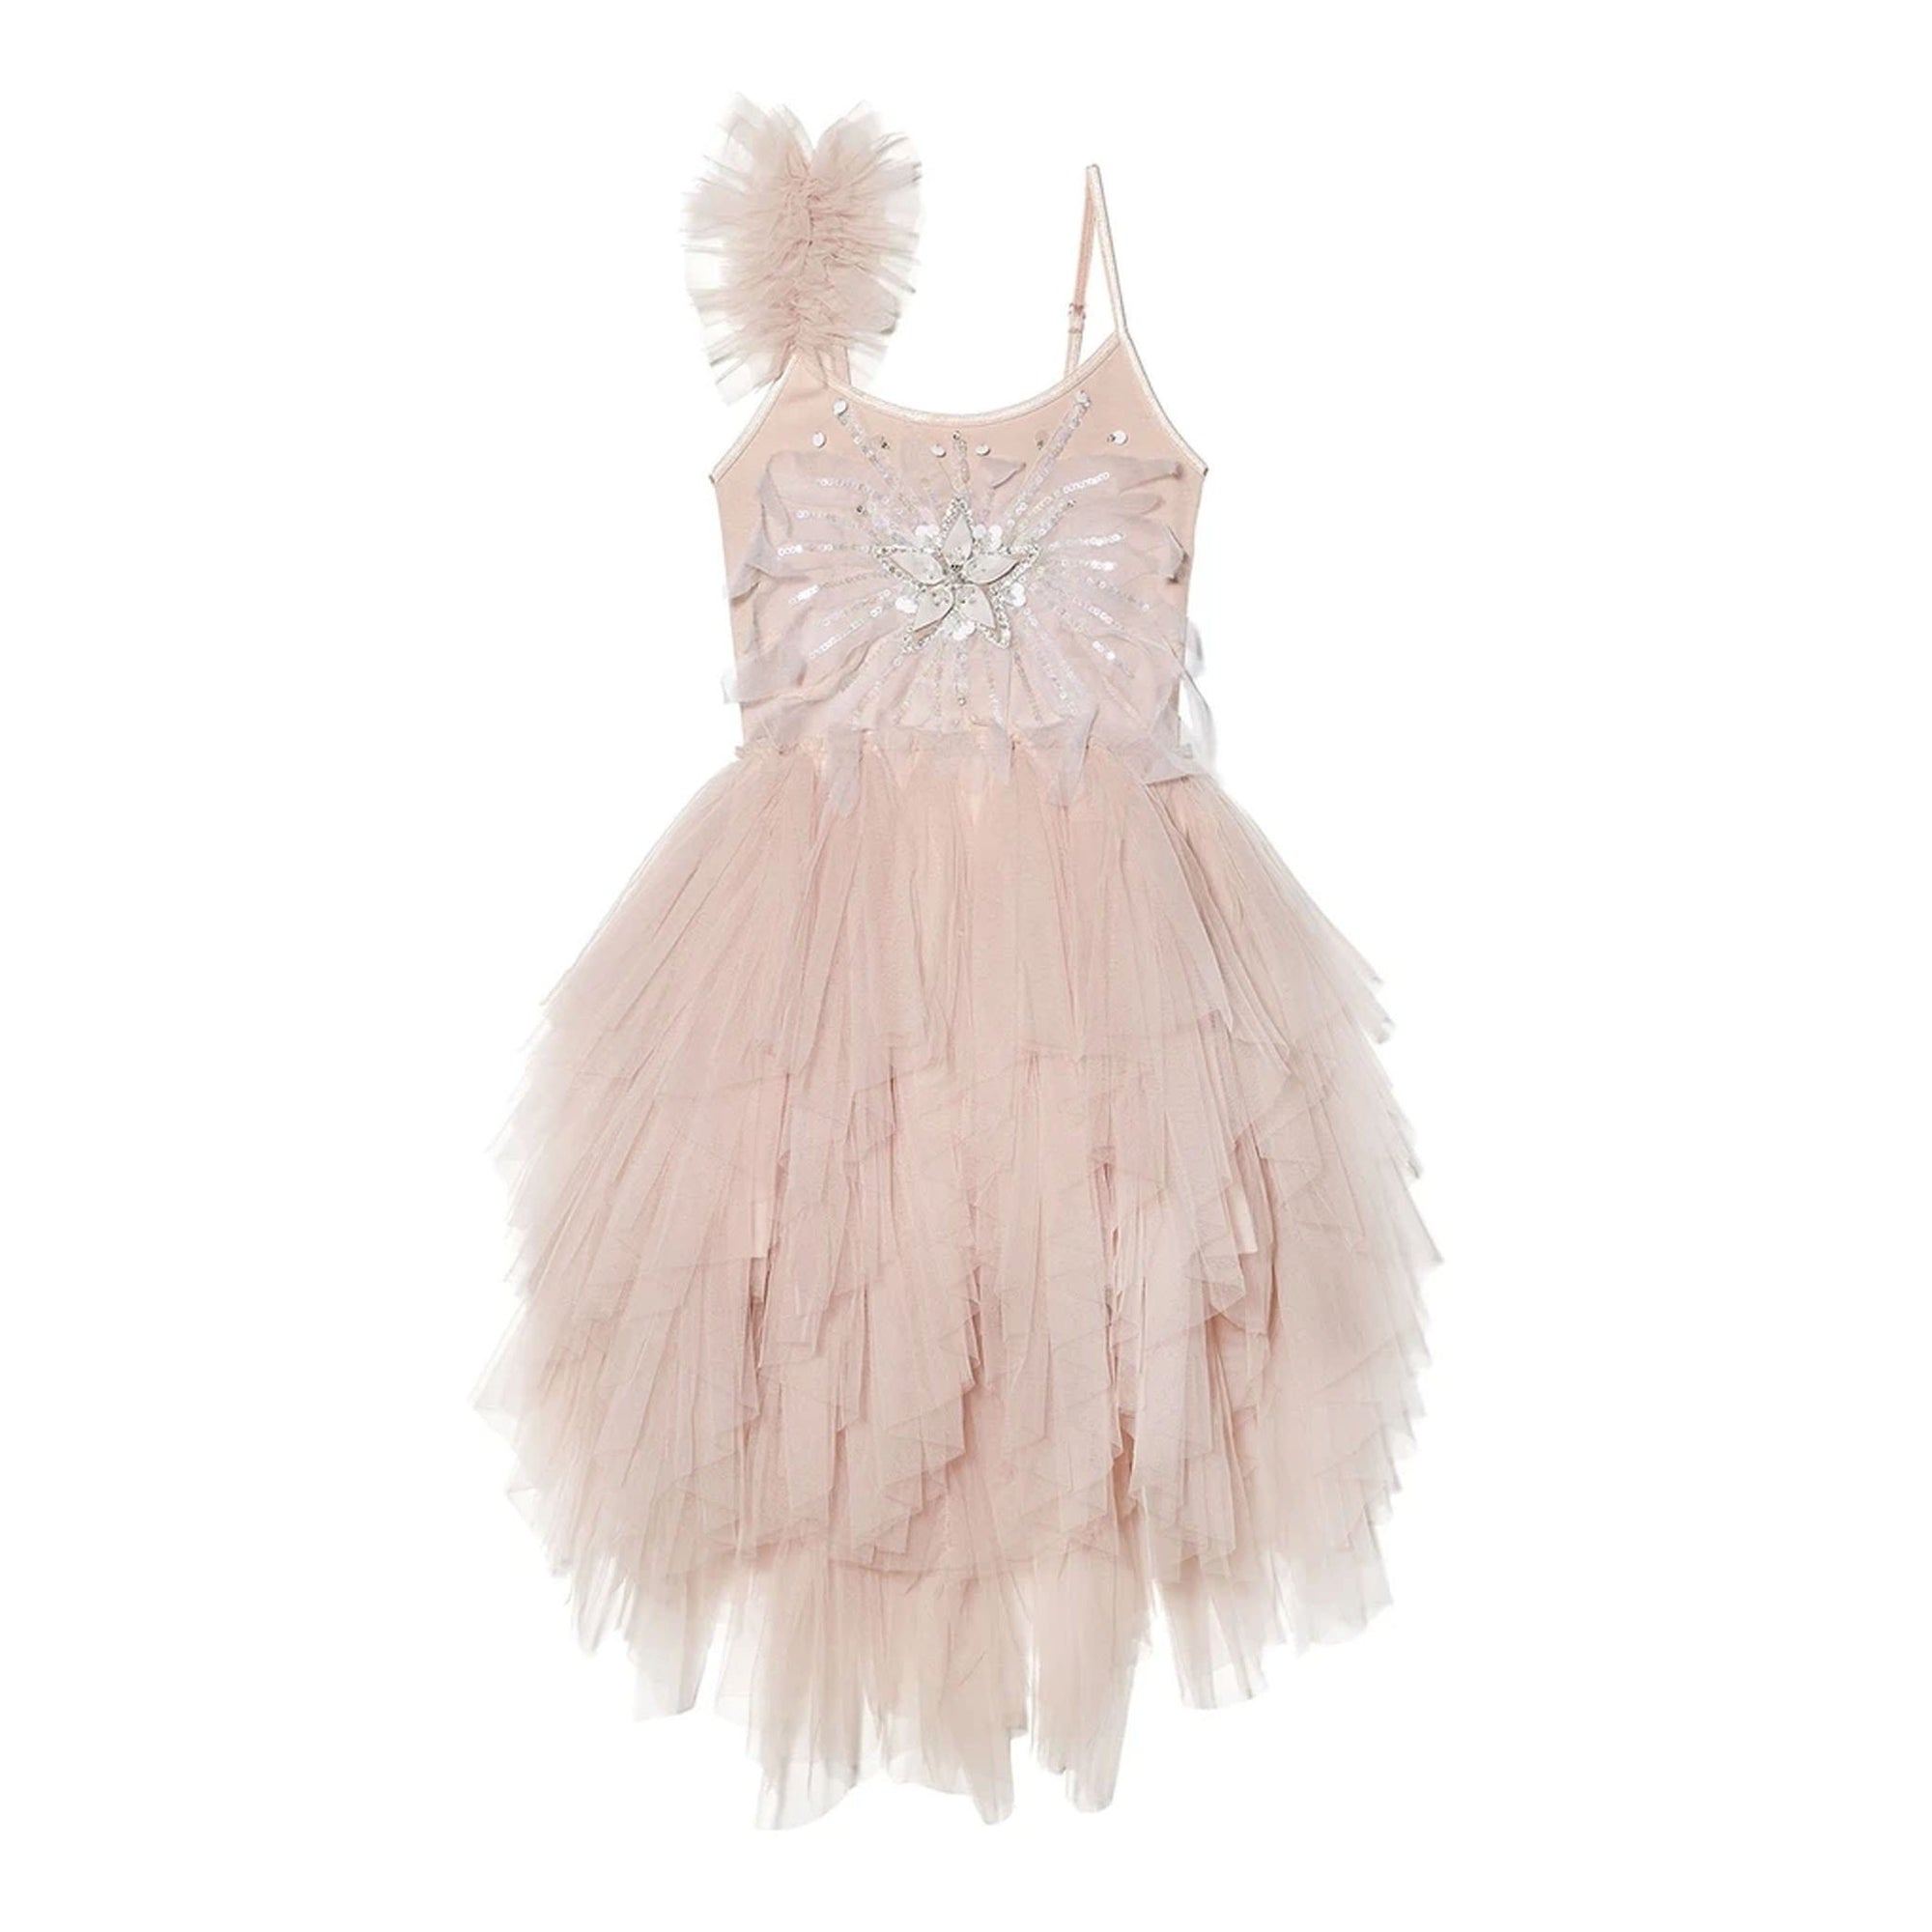 Tutu Du Monde Shooting Star Tutu Dress - Blush